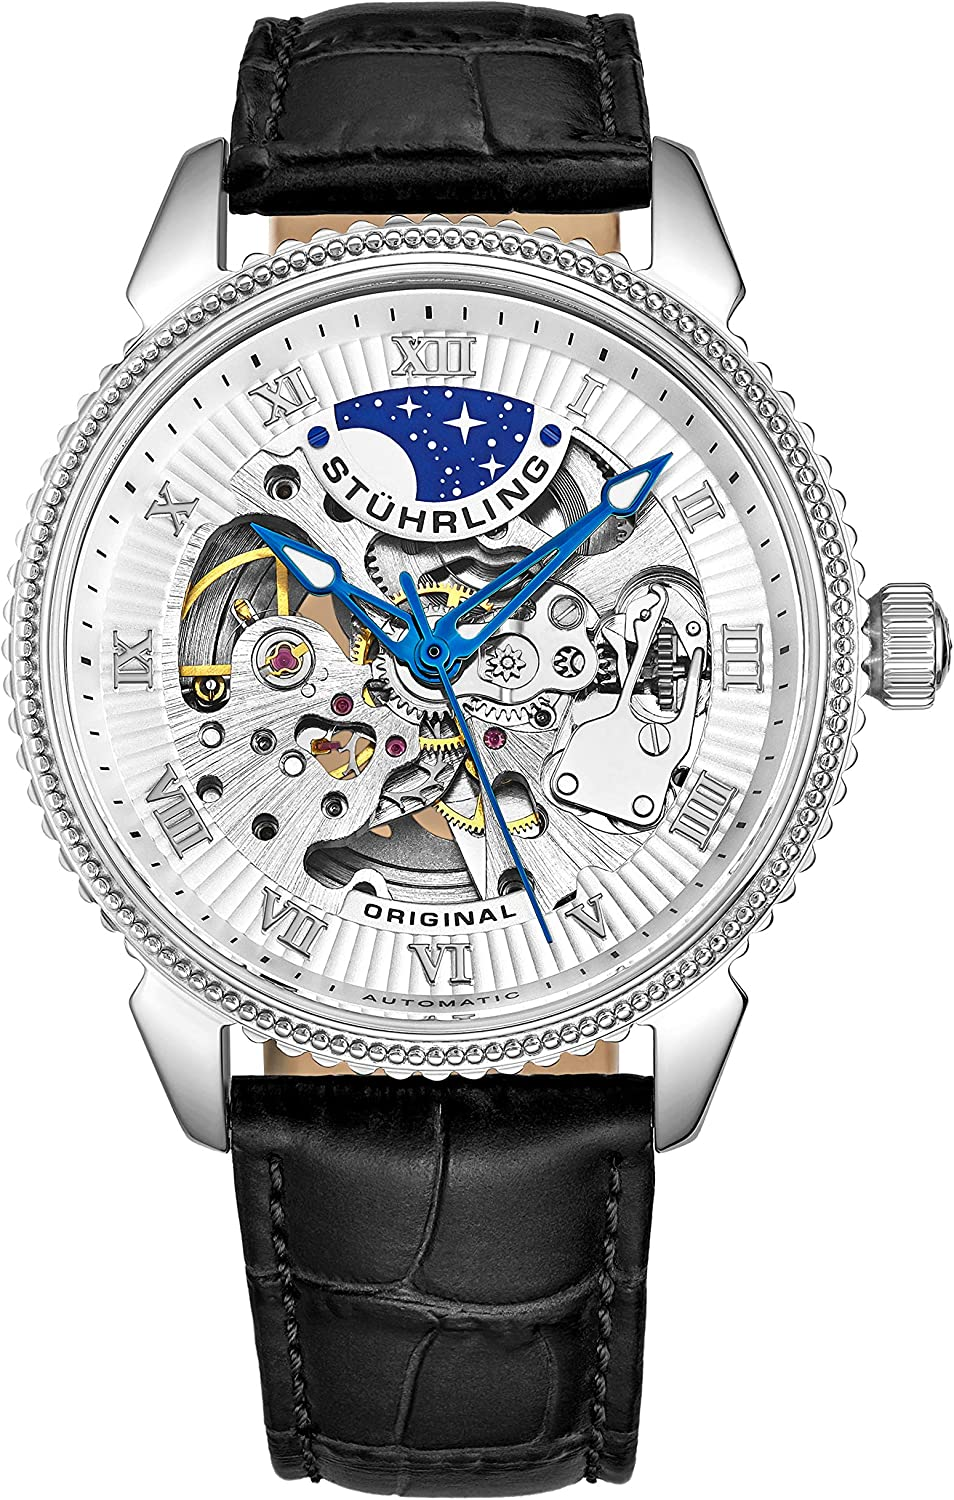 Stuhrling Original Mens Automatic Watch - Skeleton Watches for Men Self Winding Dress Watch with Premium Leather Band Mechanical Watch for Men